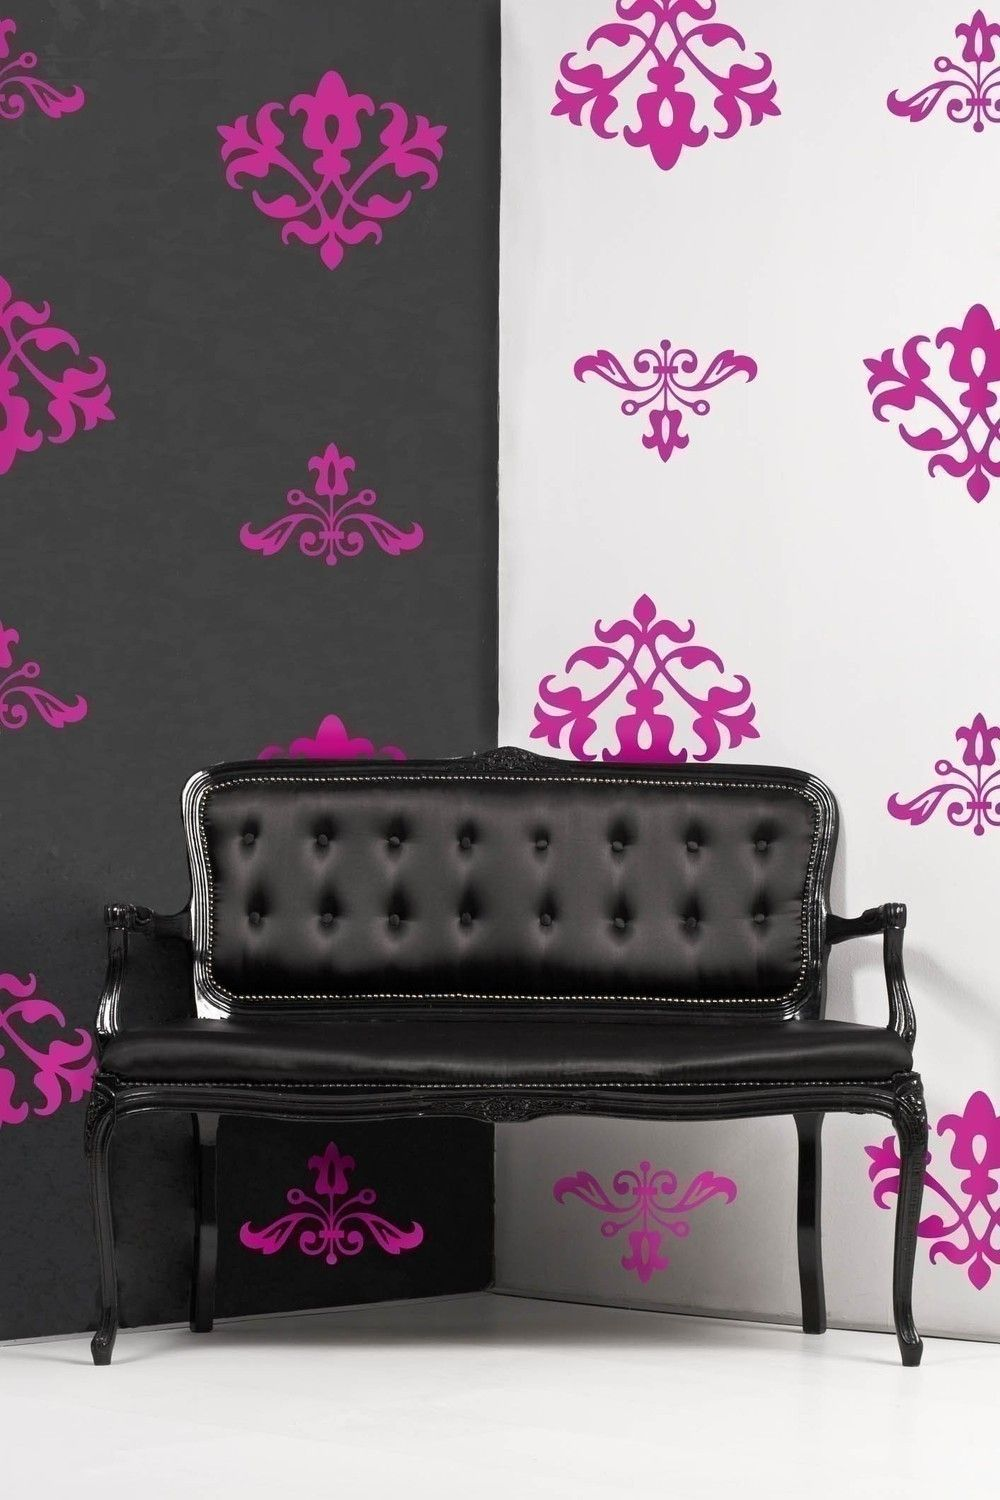 Floral Damask Vinyl Wall Decal Pattern, Shabby Floral